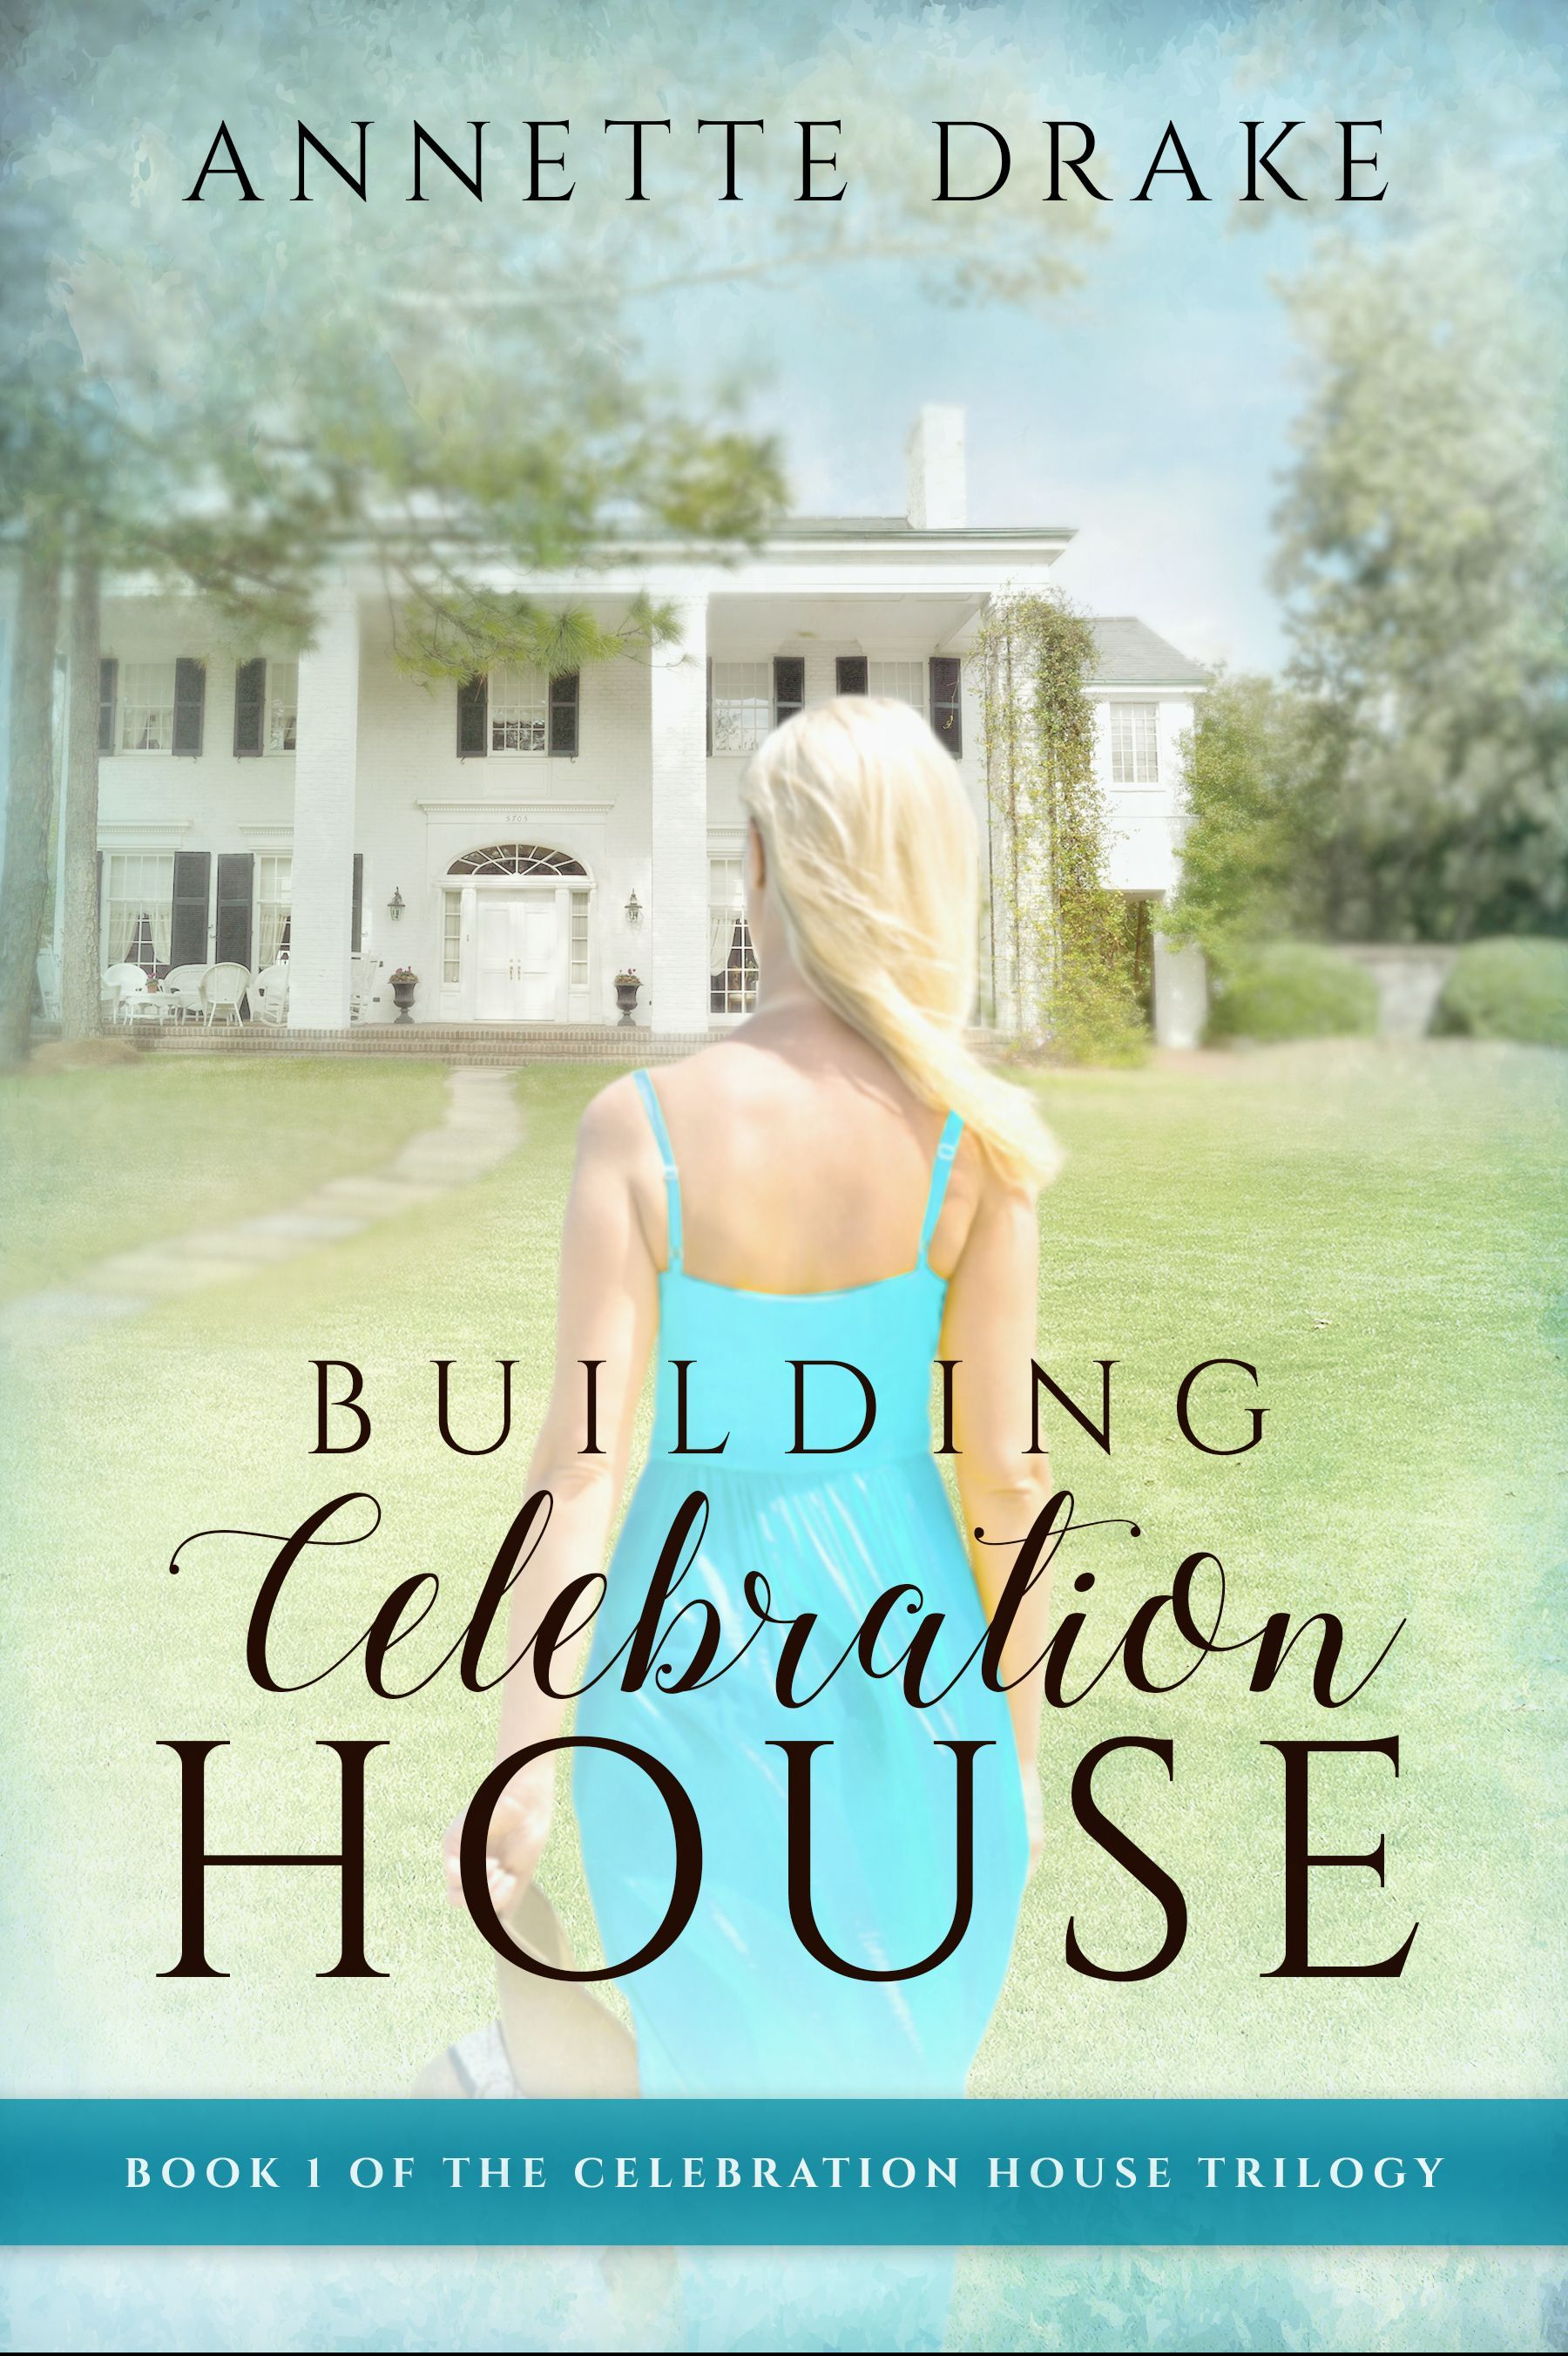 CelebrationHouse_Book1